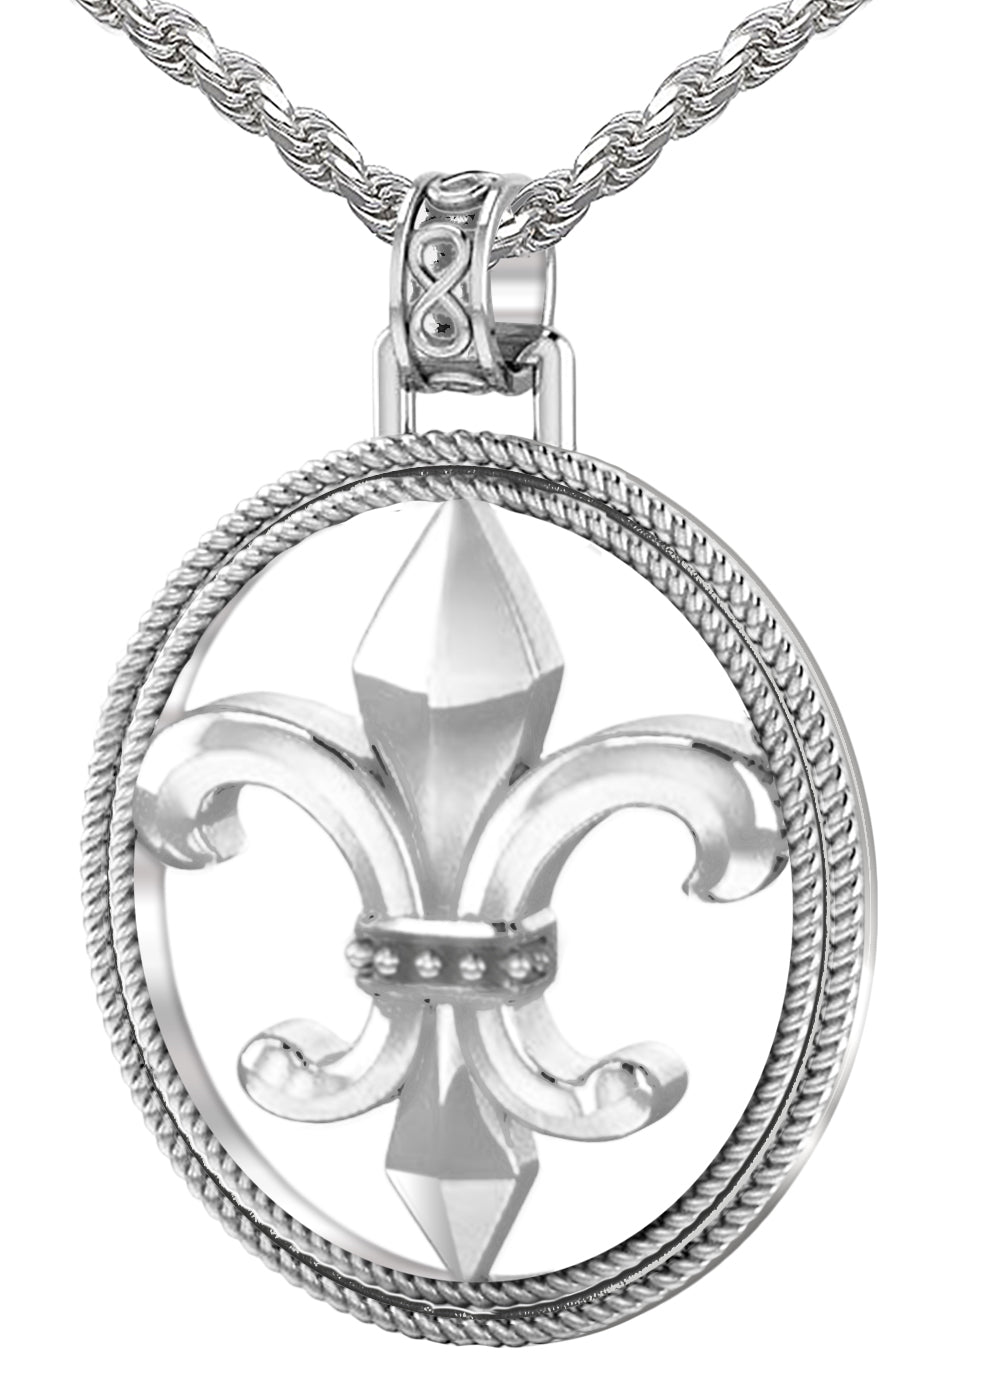 Fleur De Lis Necklace - Silver Pendant In Braided Design